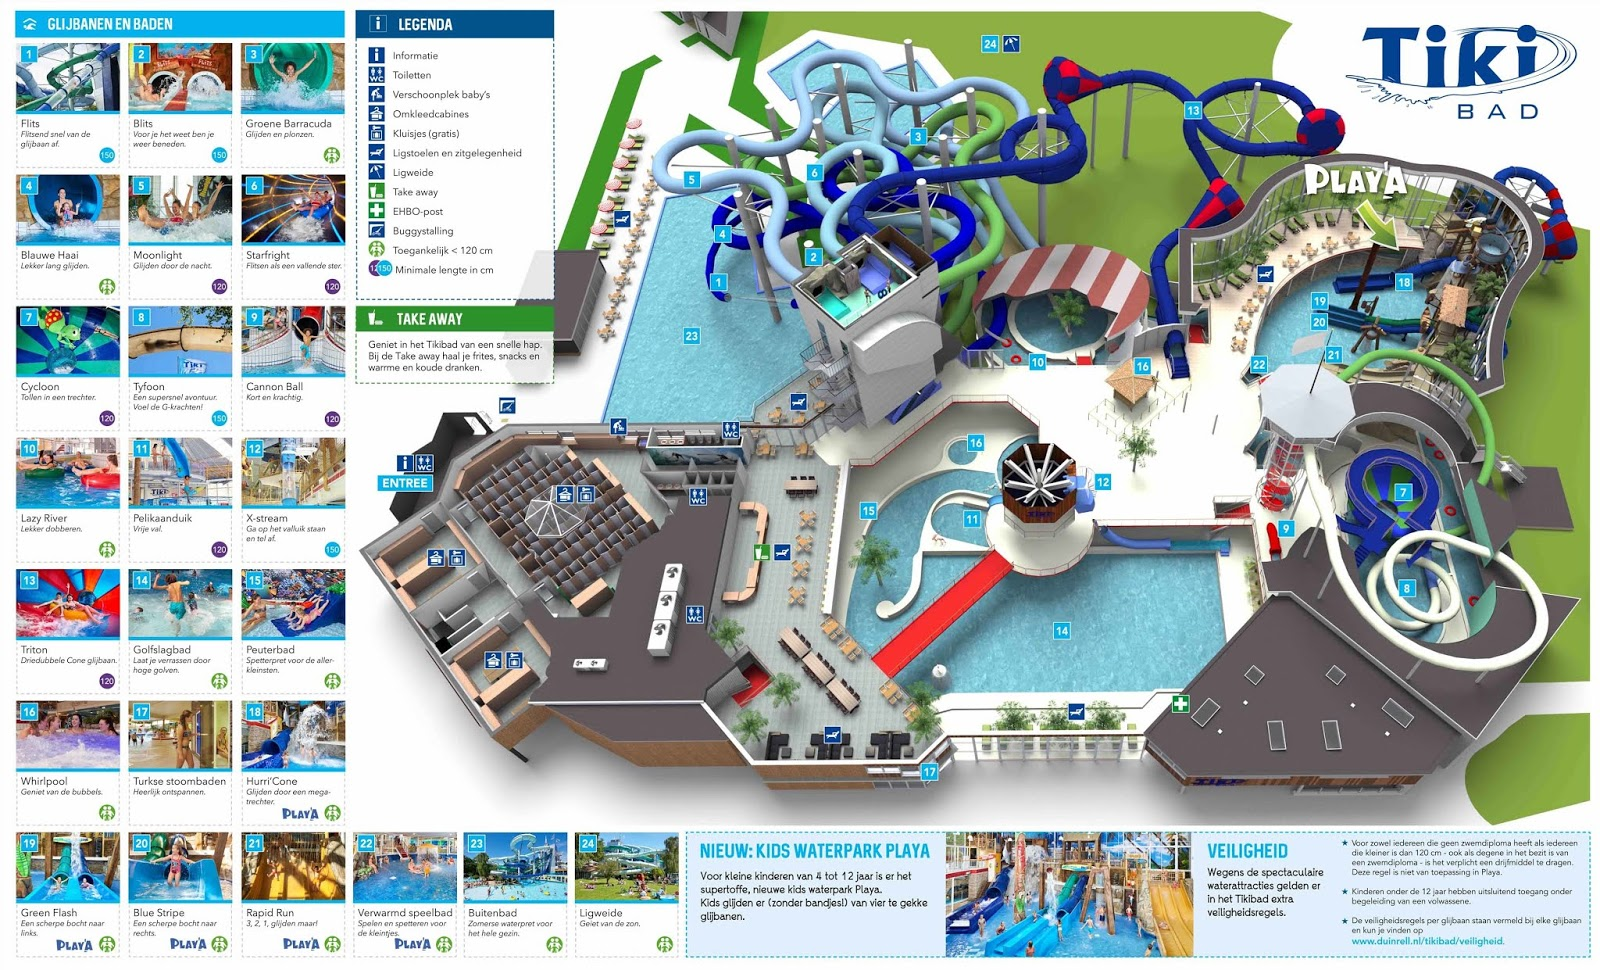 Tiki Bad Waterpark Map - Credit : Duinrell